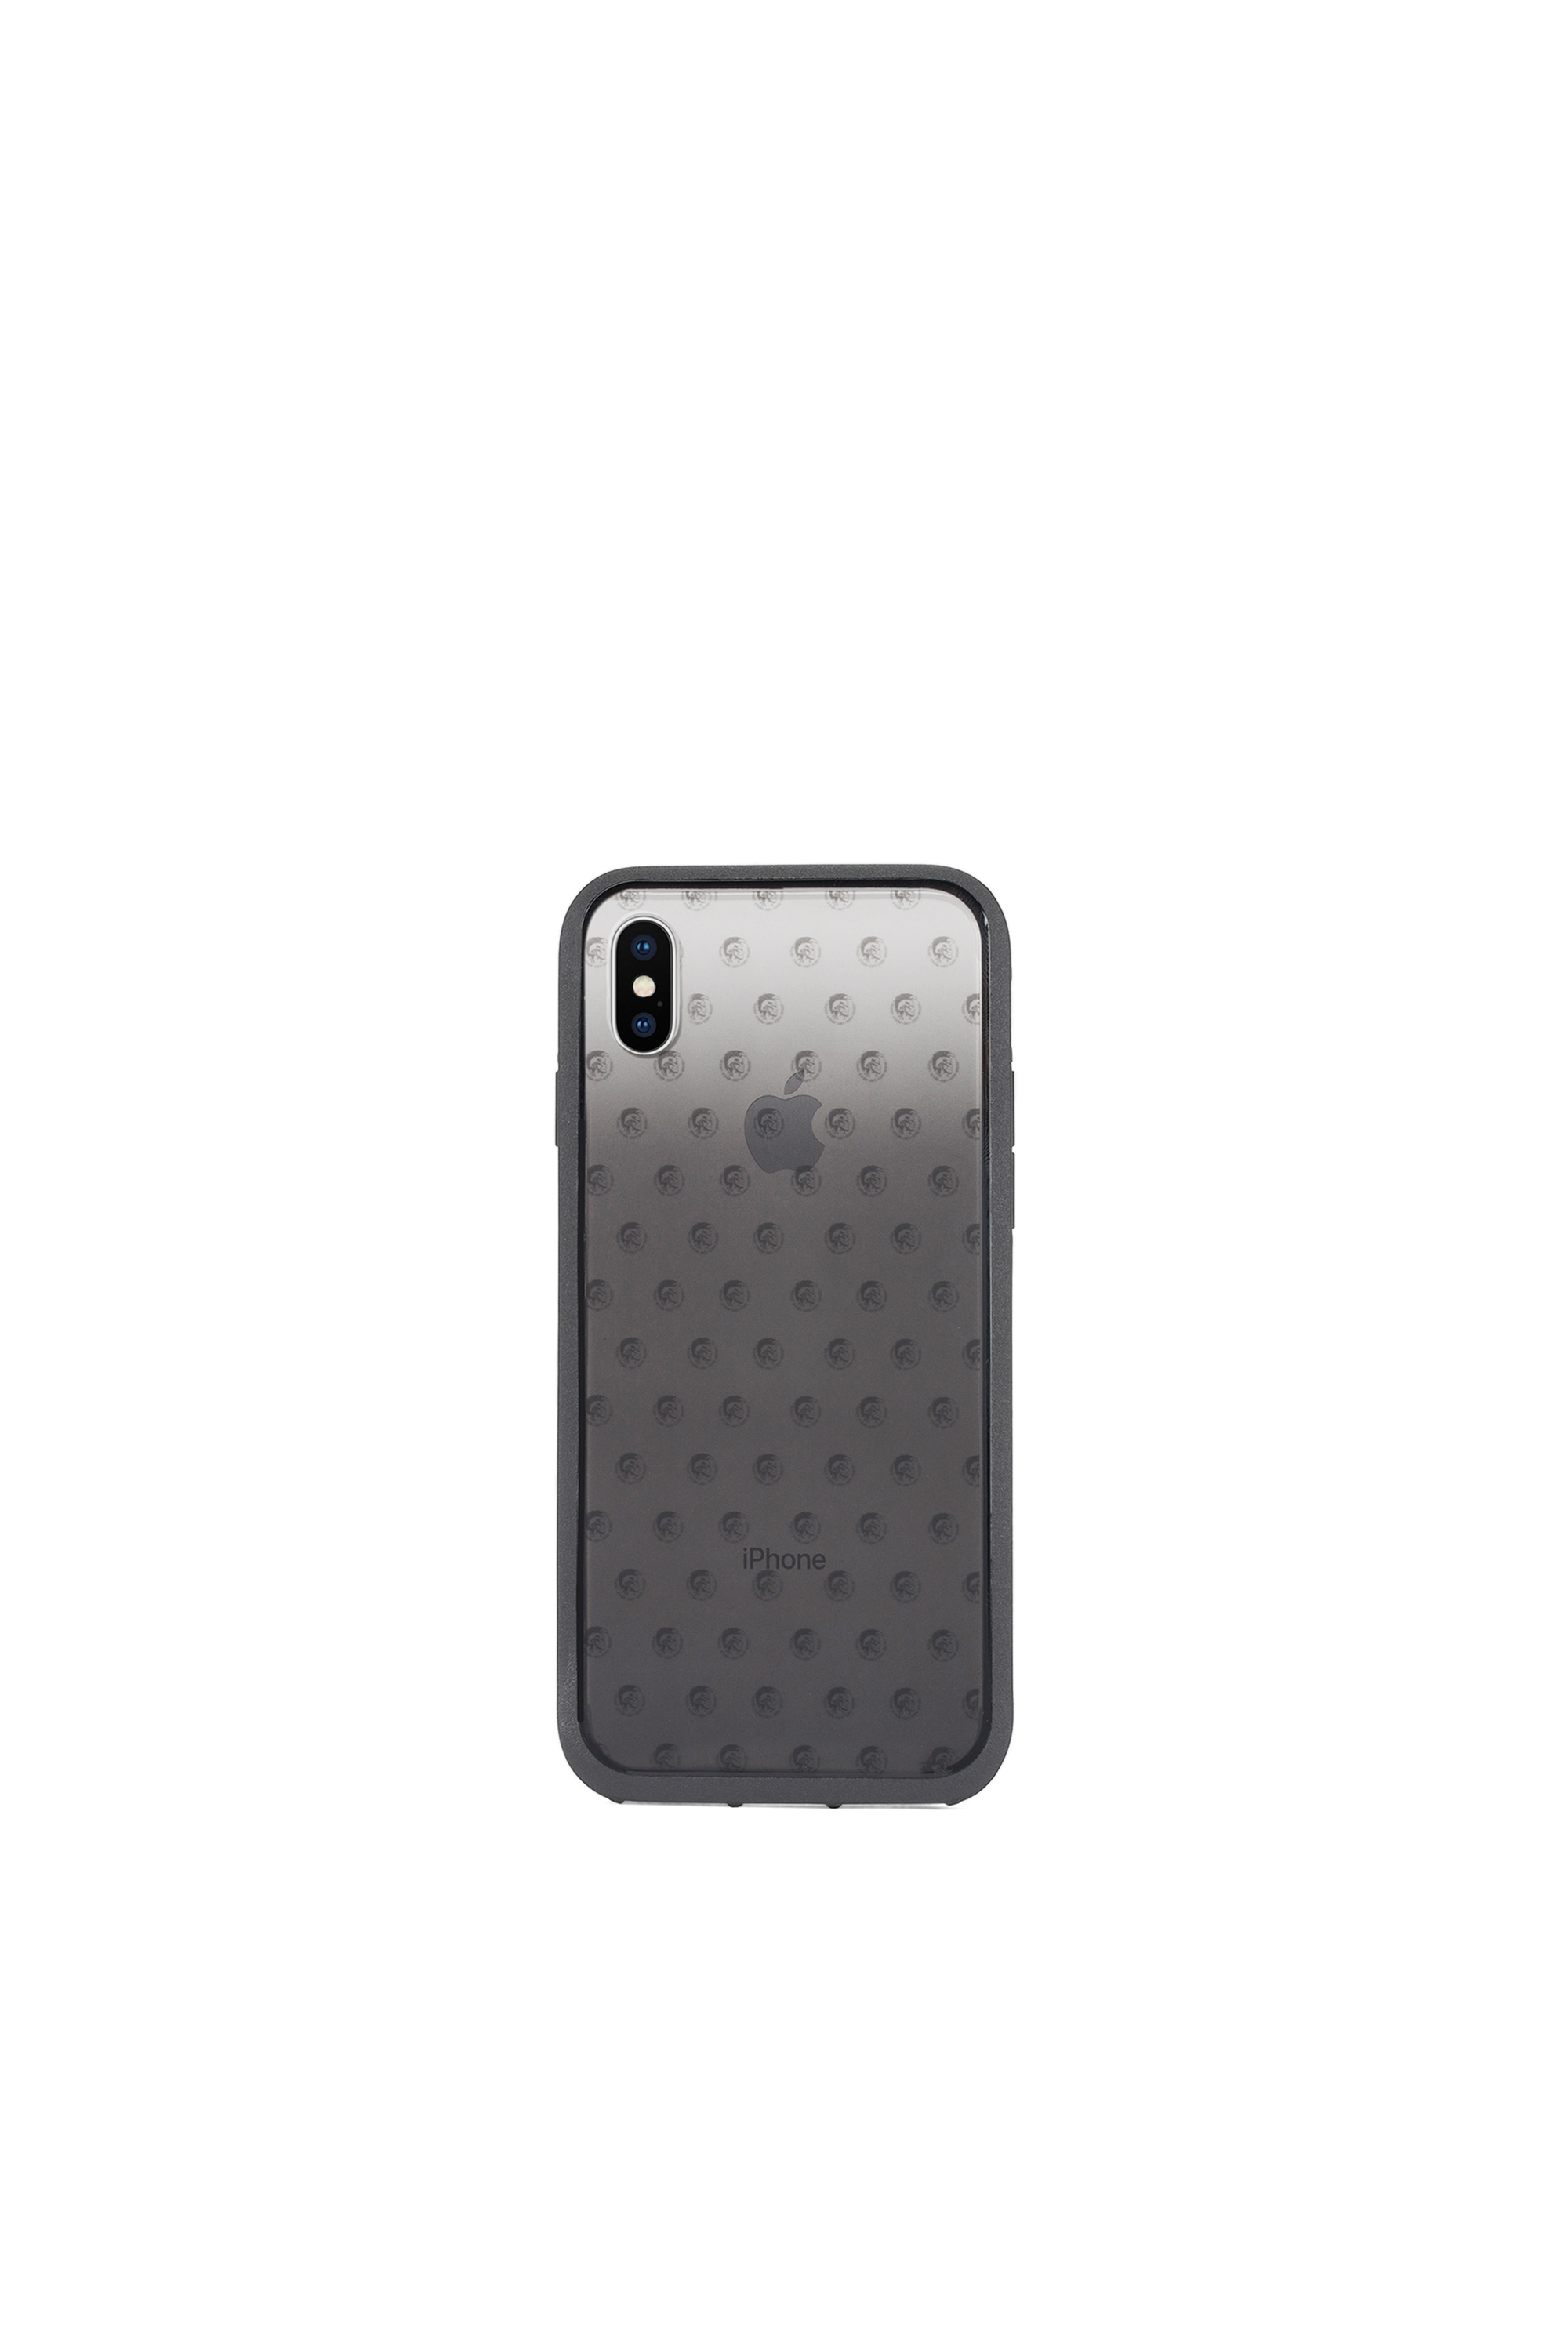 Diesel - MOHICAN HEAD DOTS BLACK IPHONE X CASE,  - Cases - Image 4